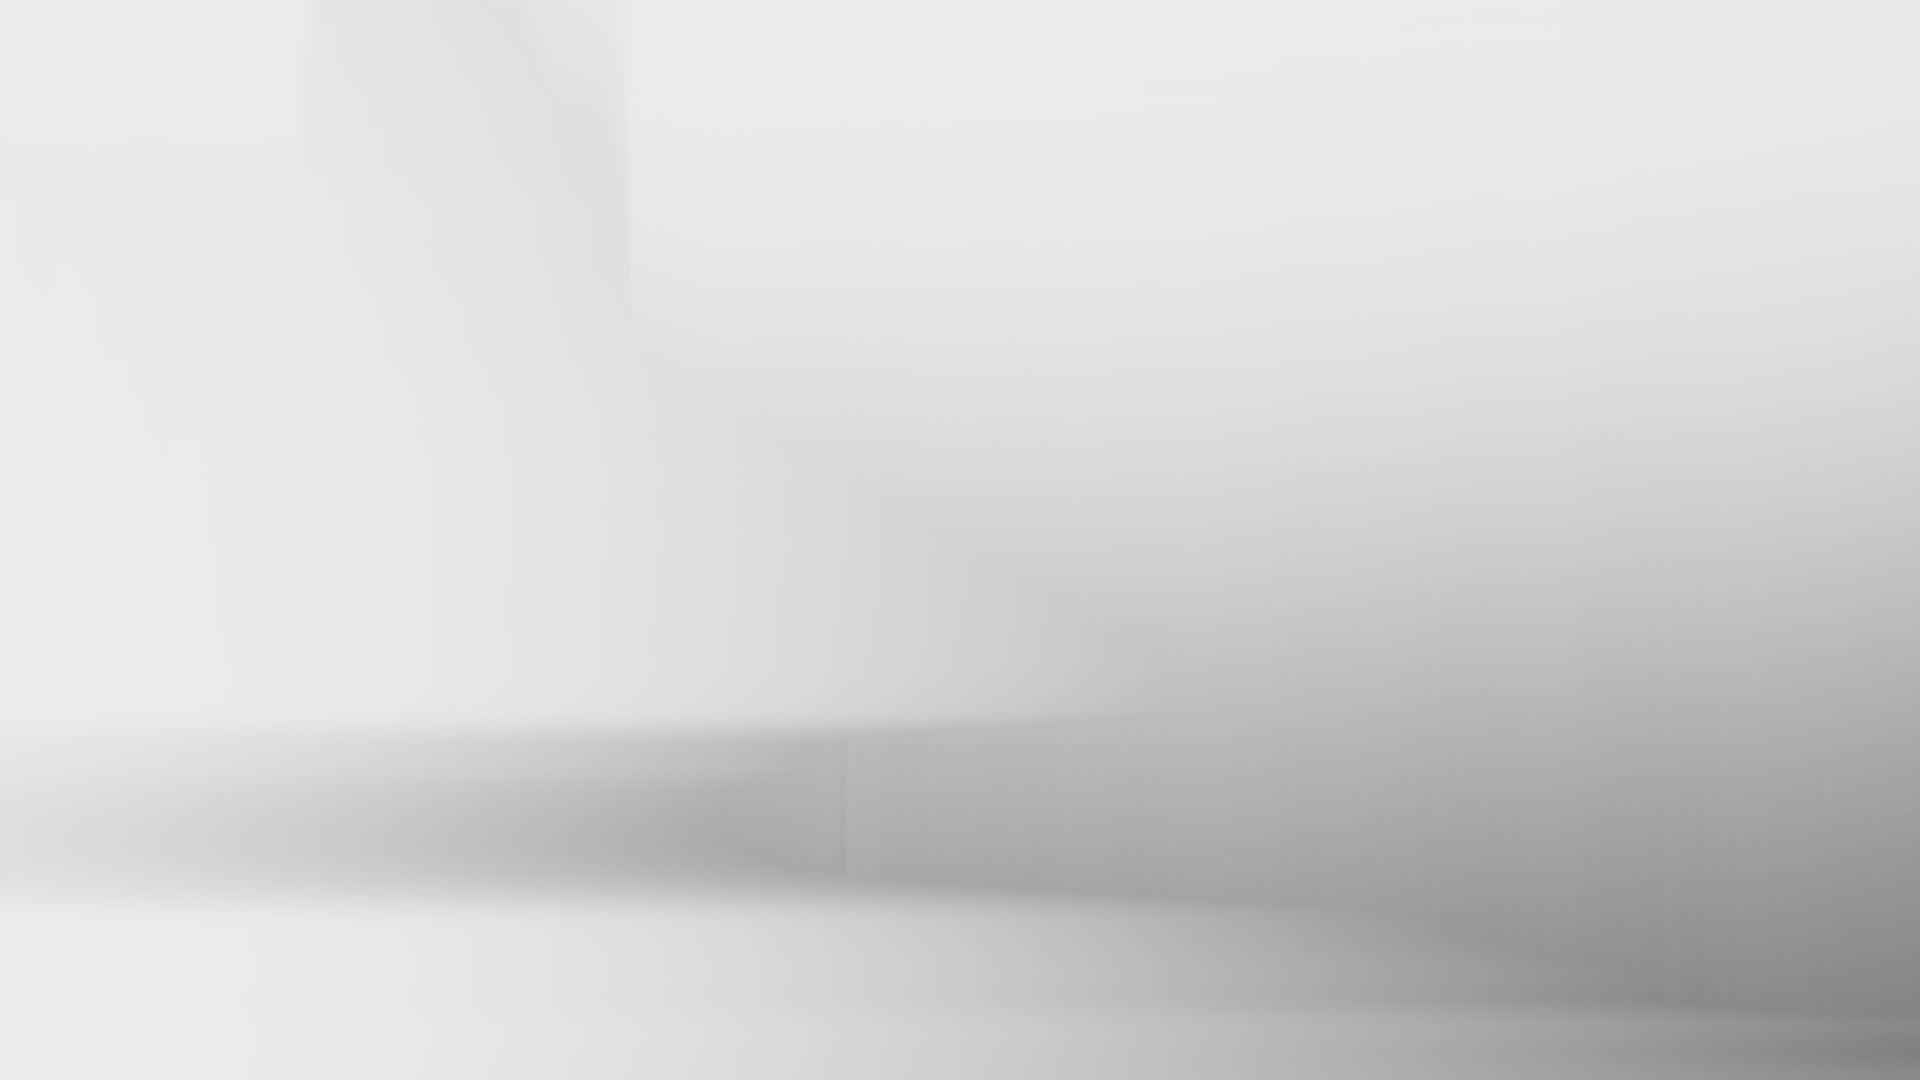 Backgrounds HD White